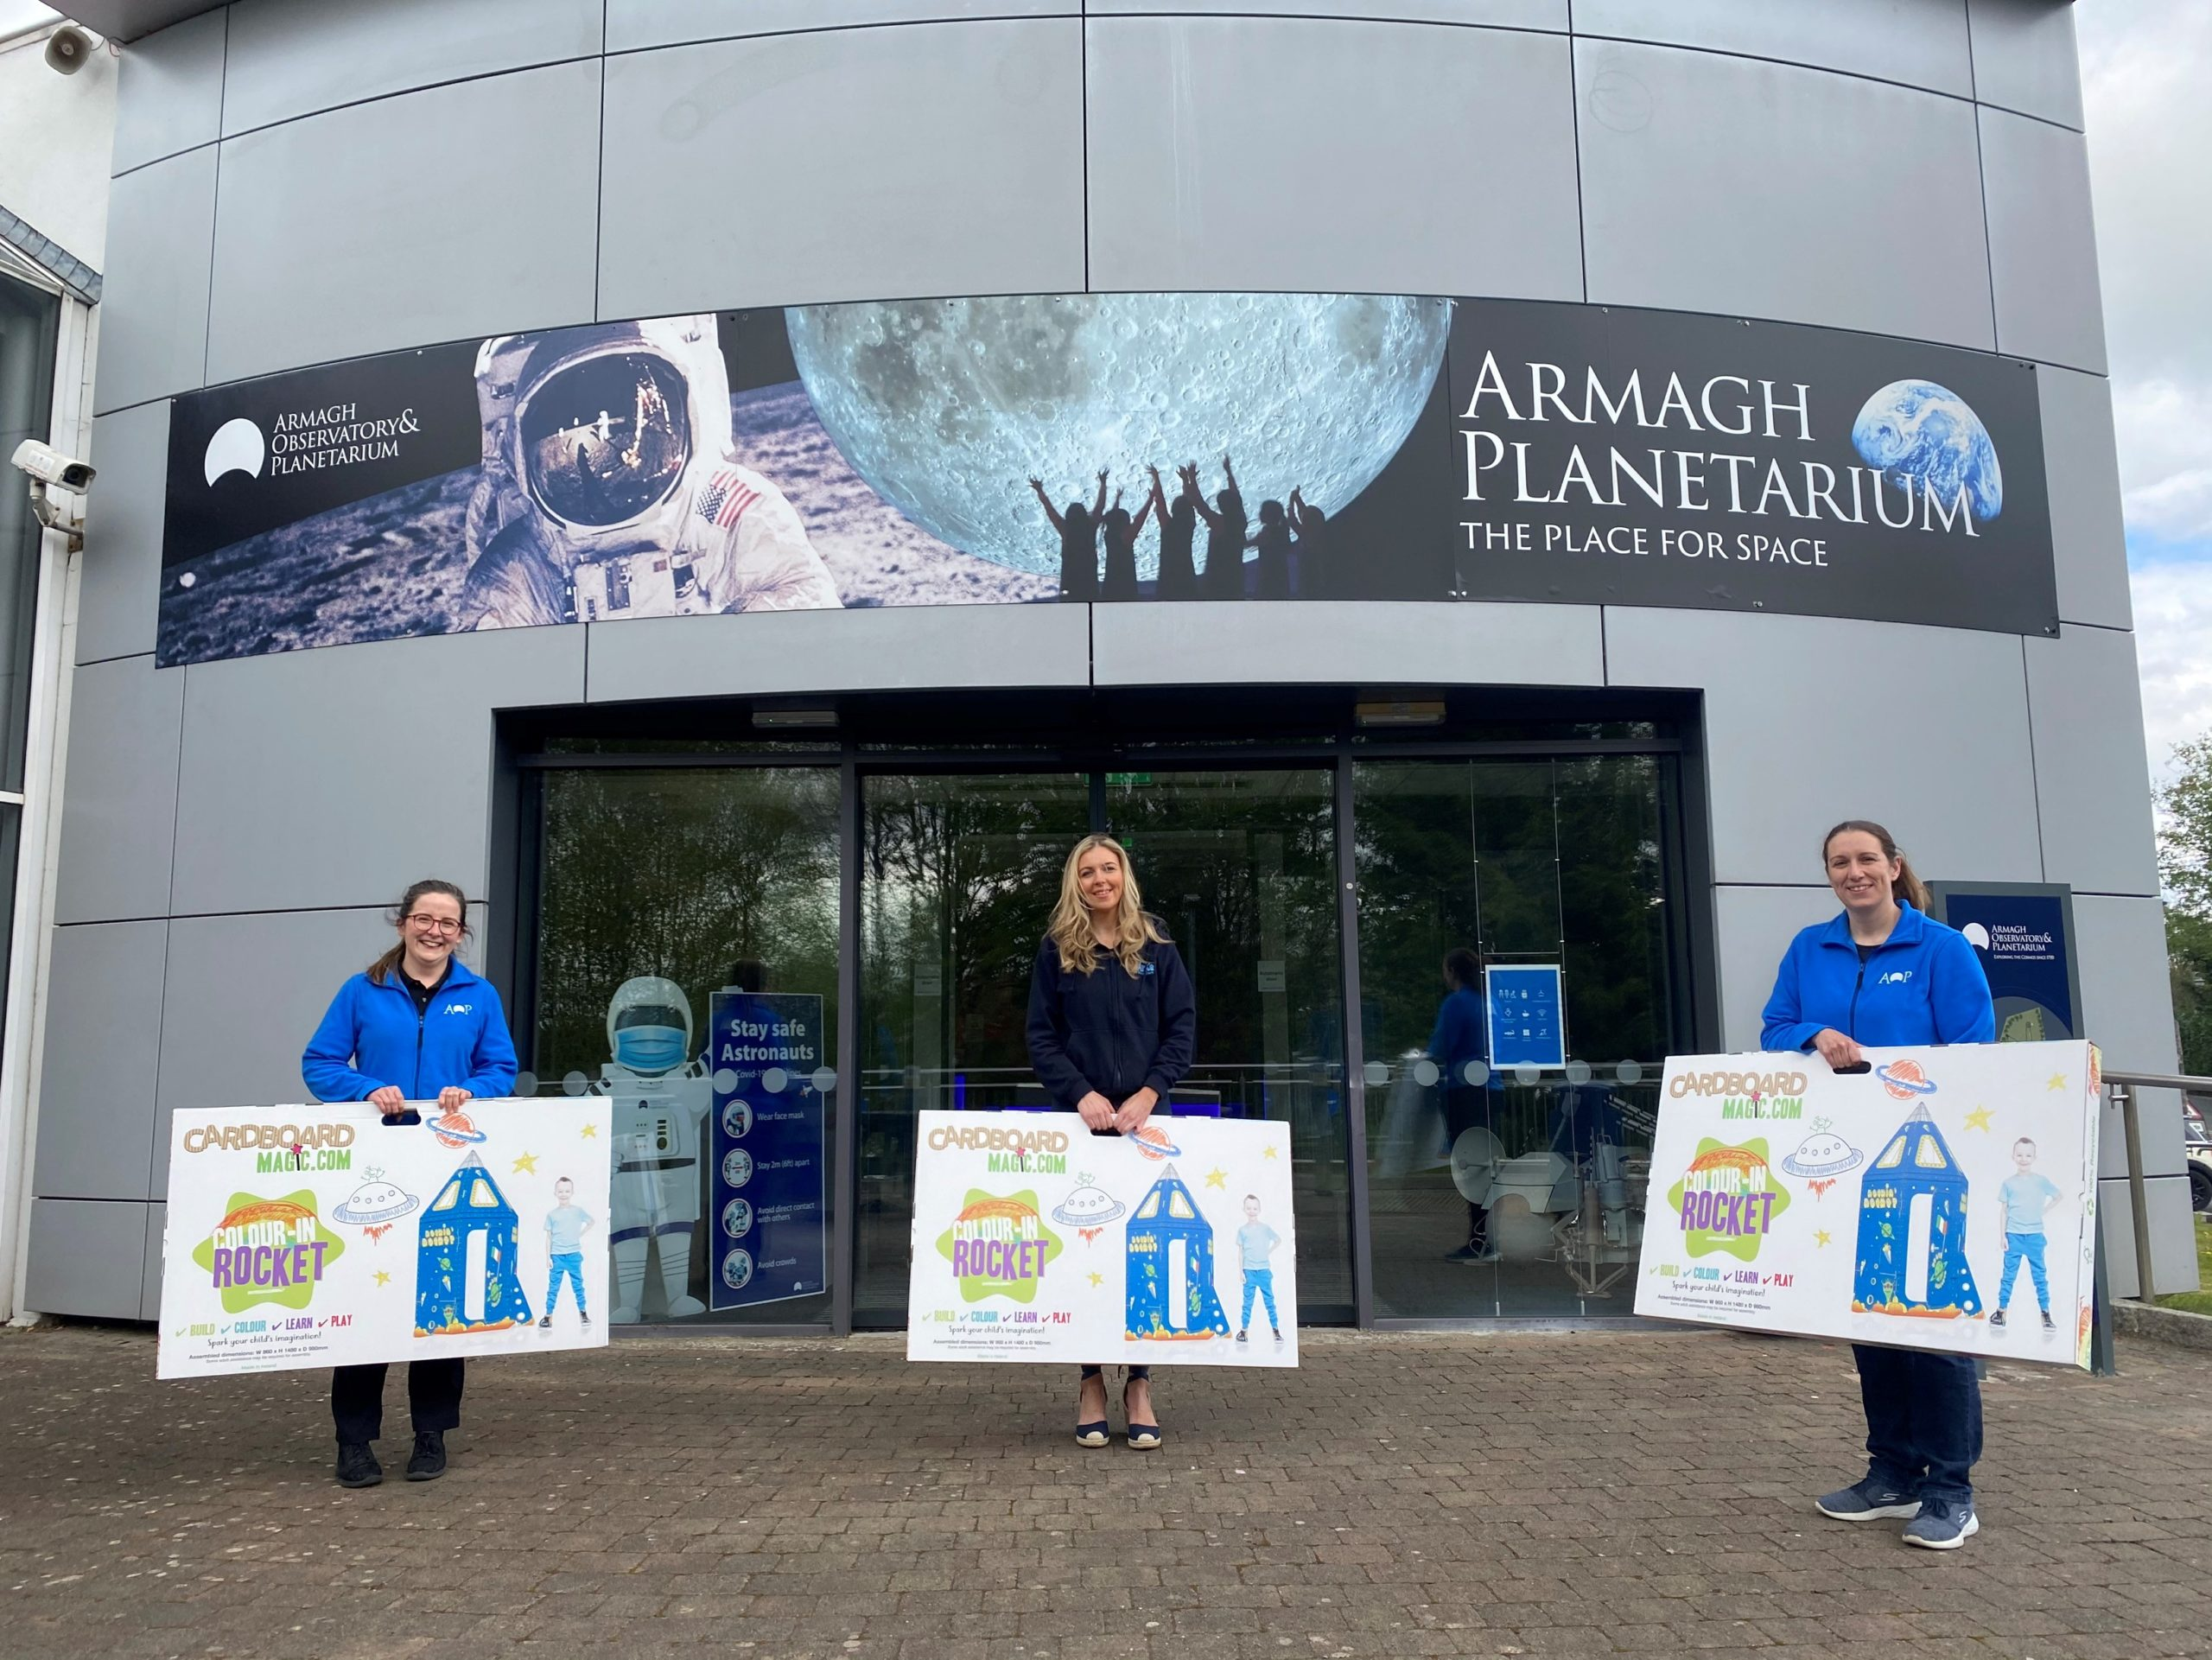 Armagh Observatory and Planetarium